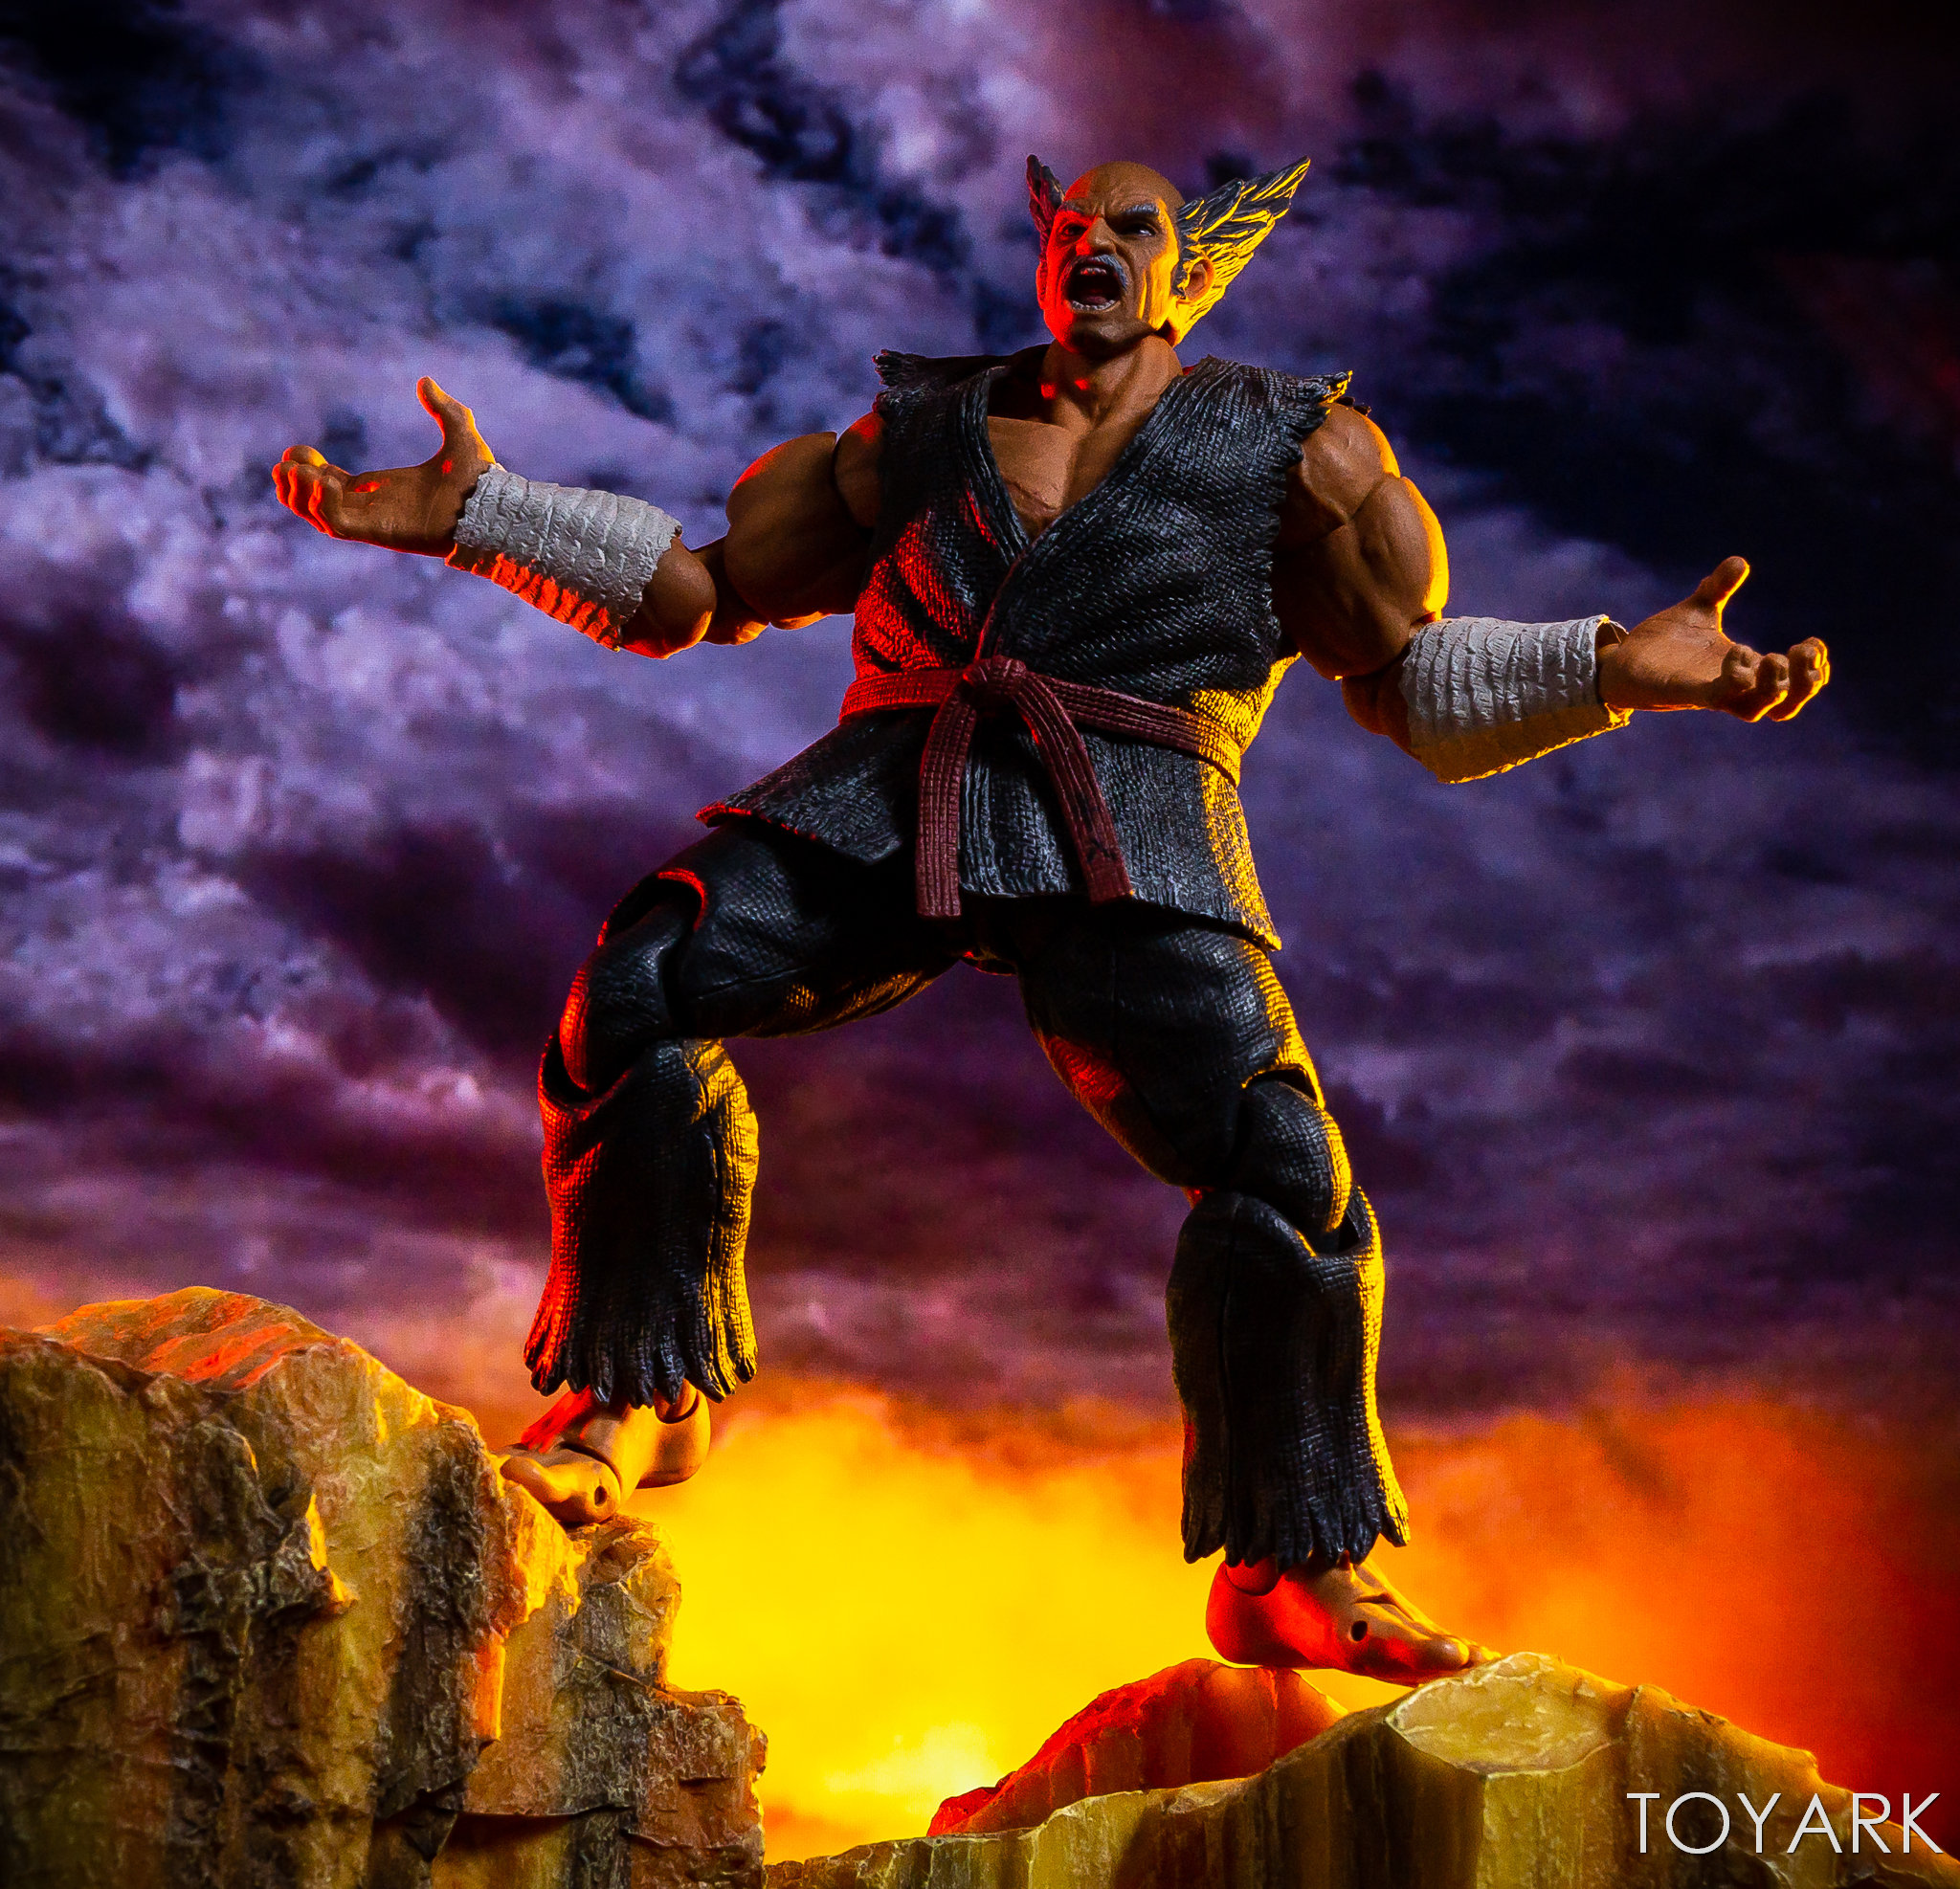 https://news.toyark.com/wp-content/uploads/sites/4/2018/05/Storm-Heihachi-Figure-047.jpg